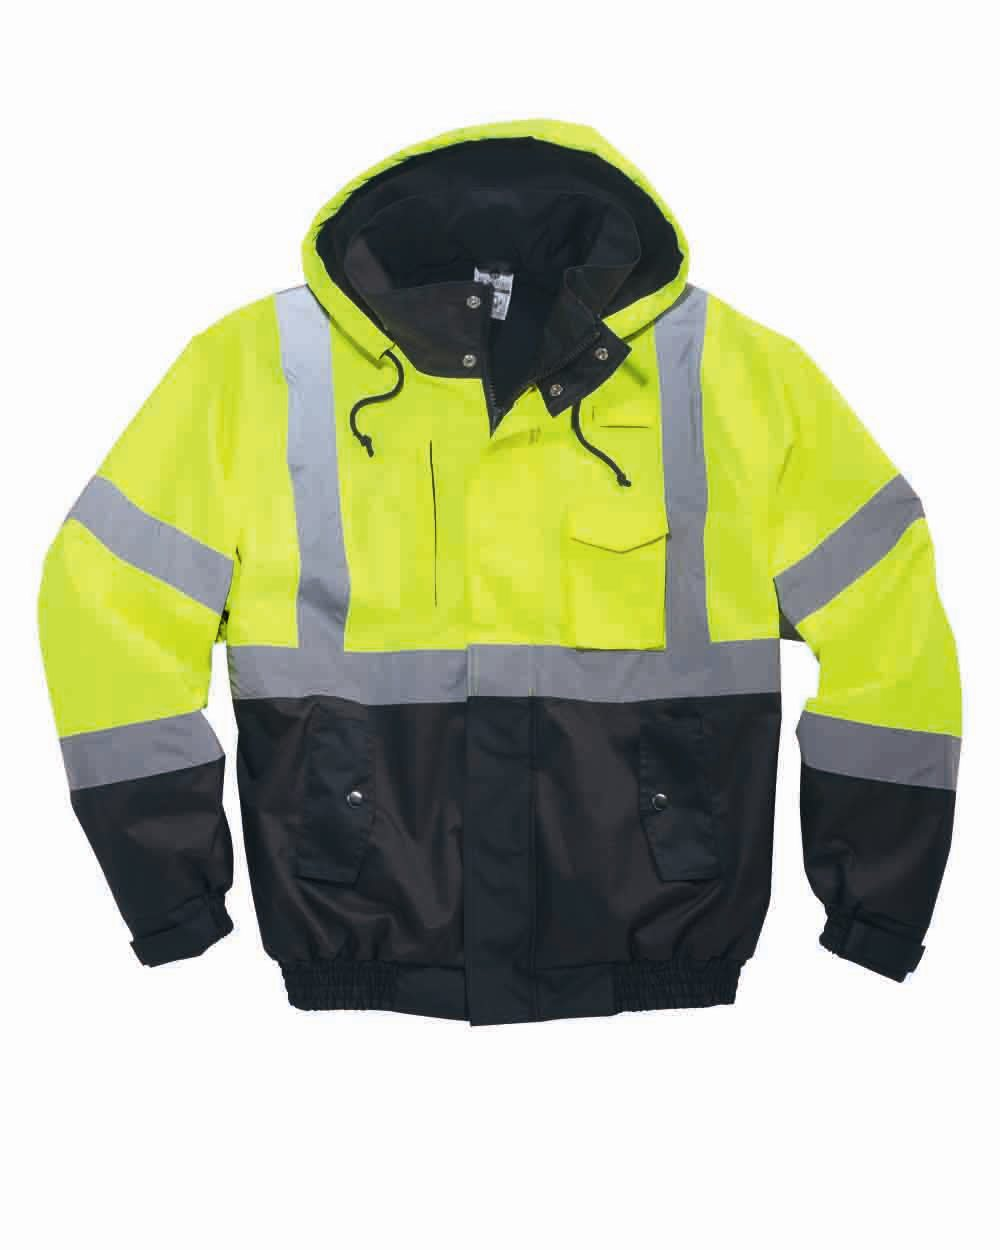 ML Kishigo 9670-9671 - Hi-Vis Jacket - 9670, 9671